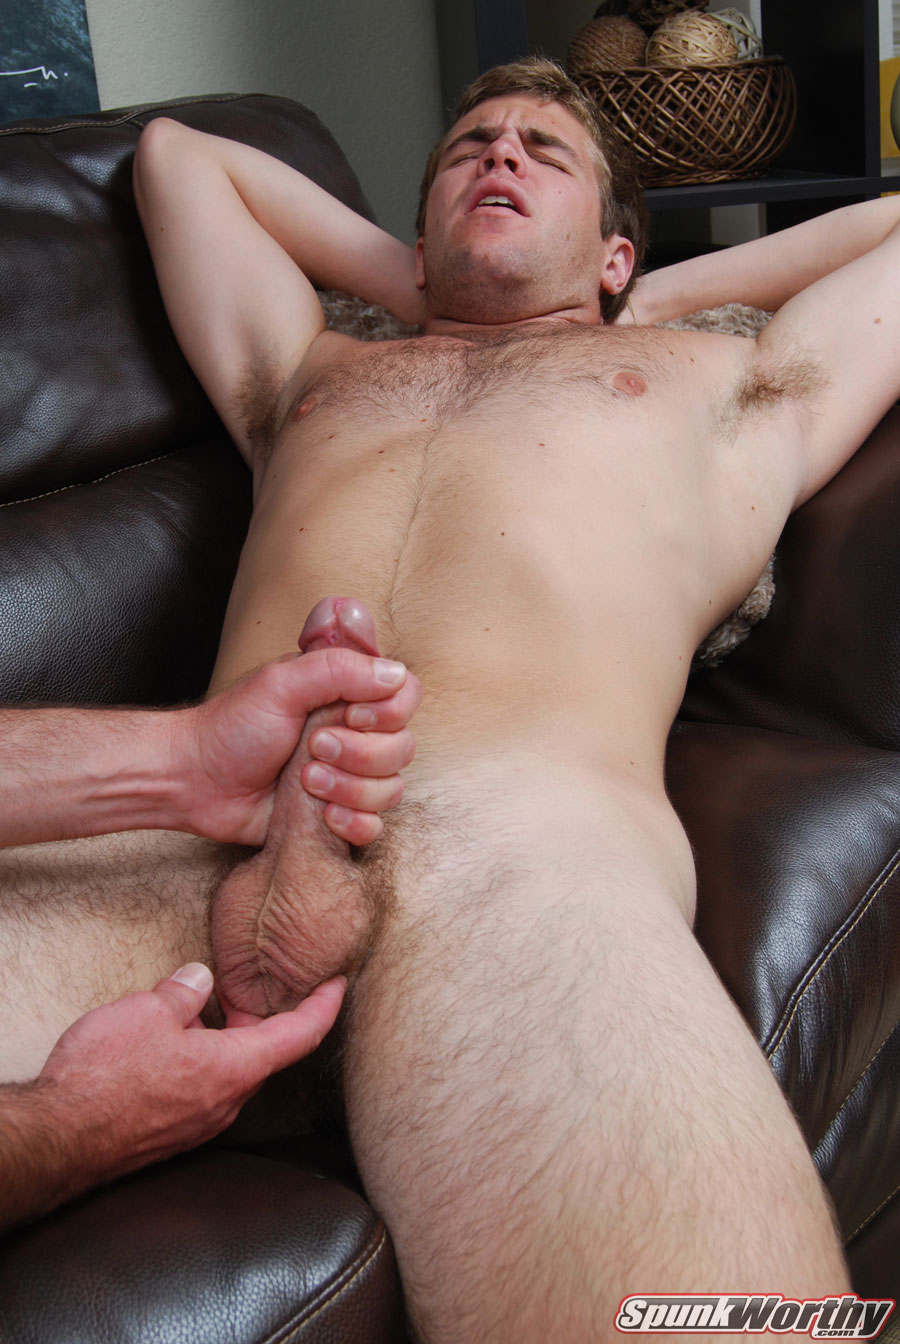 Spunkworthy Wes torrent gay straight blowjob 14 Hairy Straight College Jock Gets His Cock Sucked By A Dude For The First Time